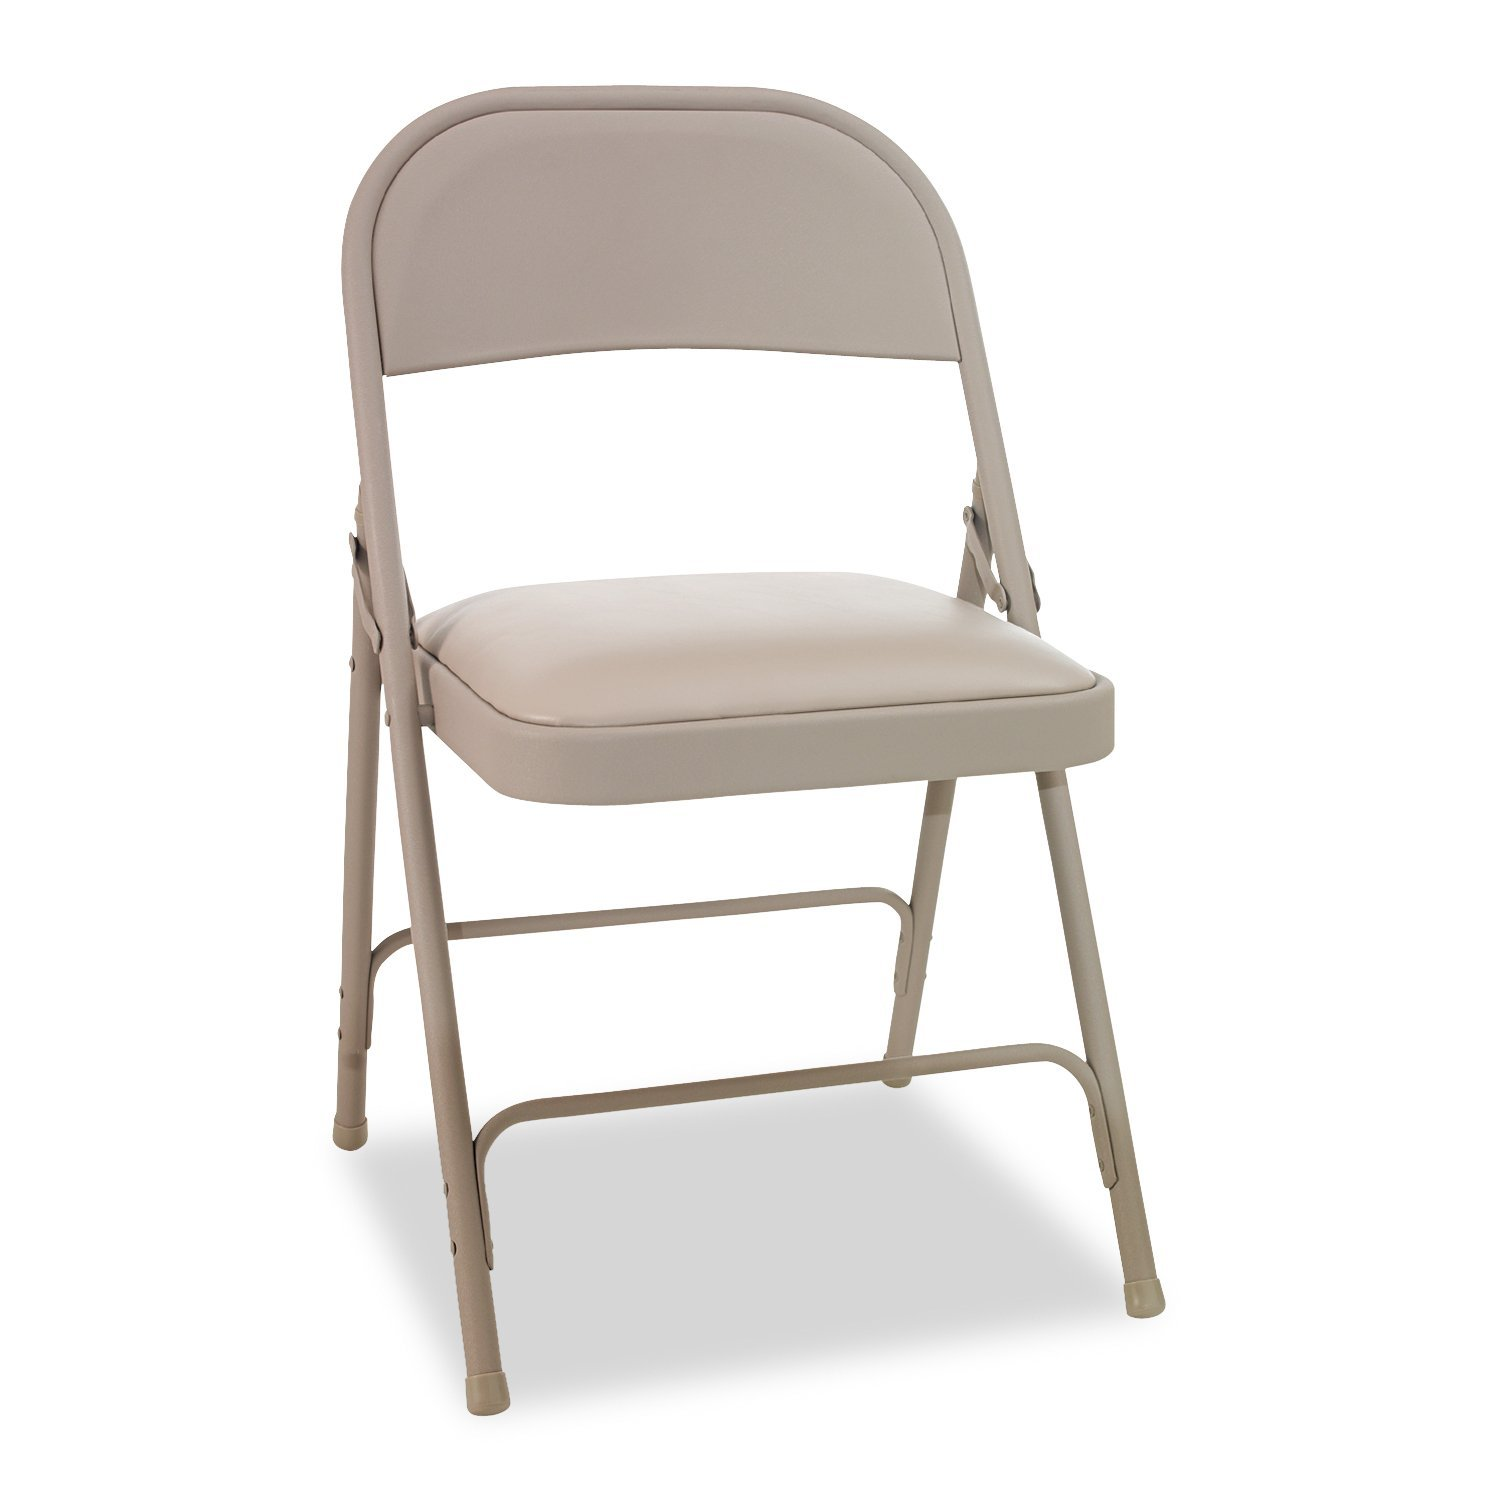 Luxury Padded Folding Chairs Luxury